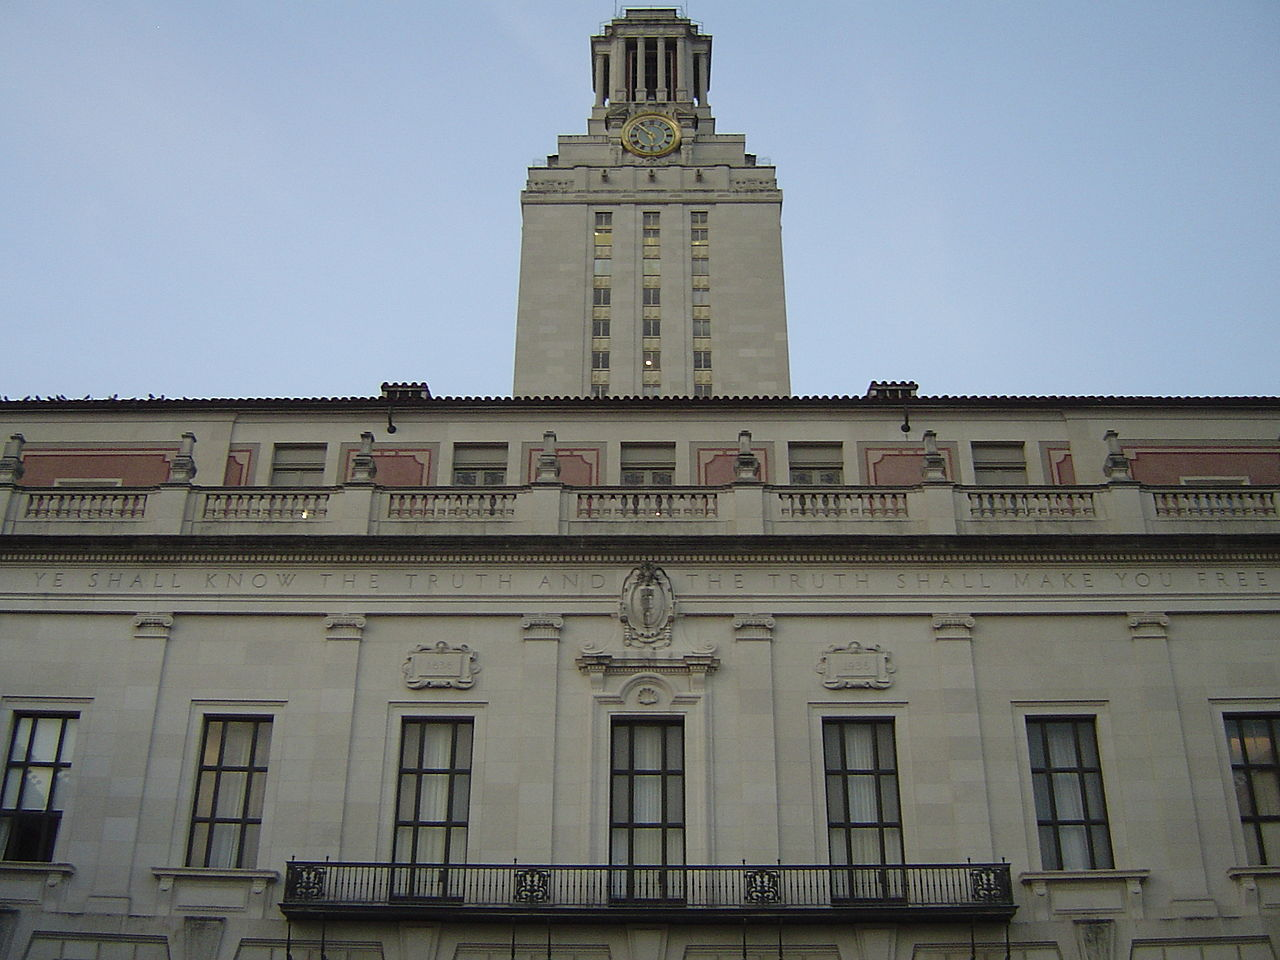 University Of Texas Organizational Chart: Main Building at The University of Texas at Austin.jpg ,Chart